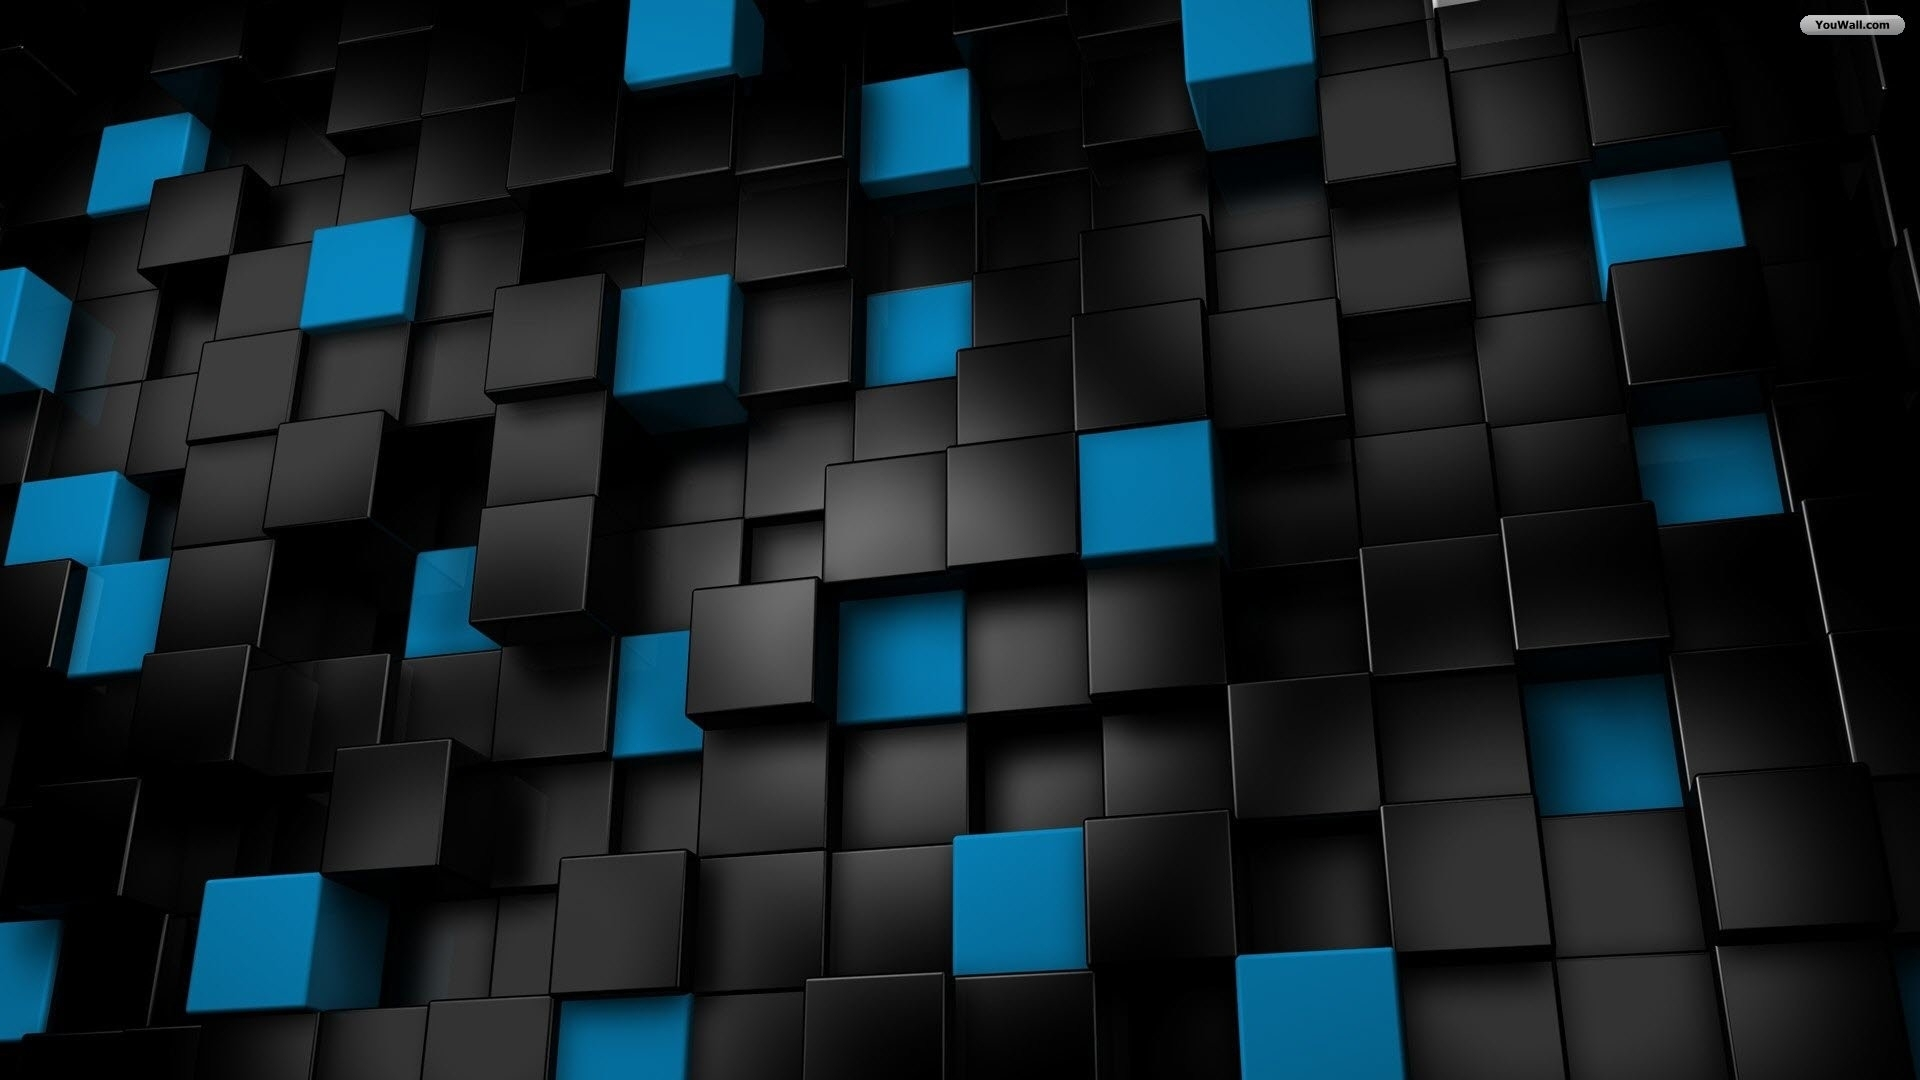 black and blue hd wallpaper (67+ images)